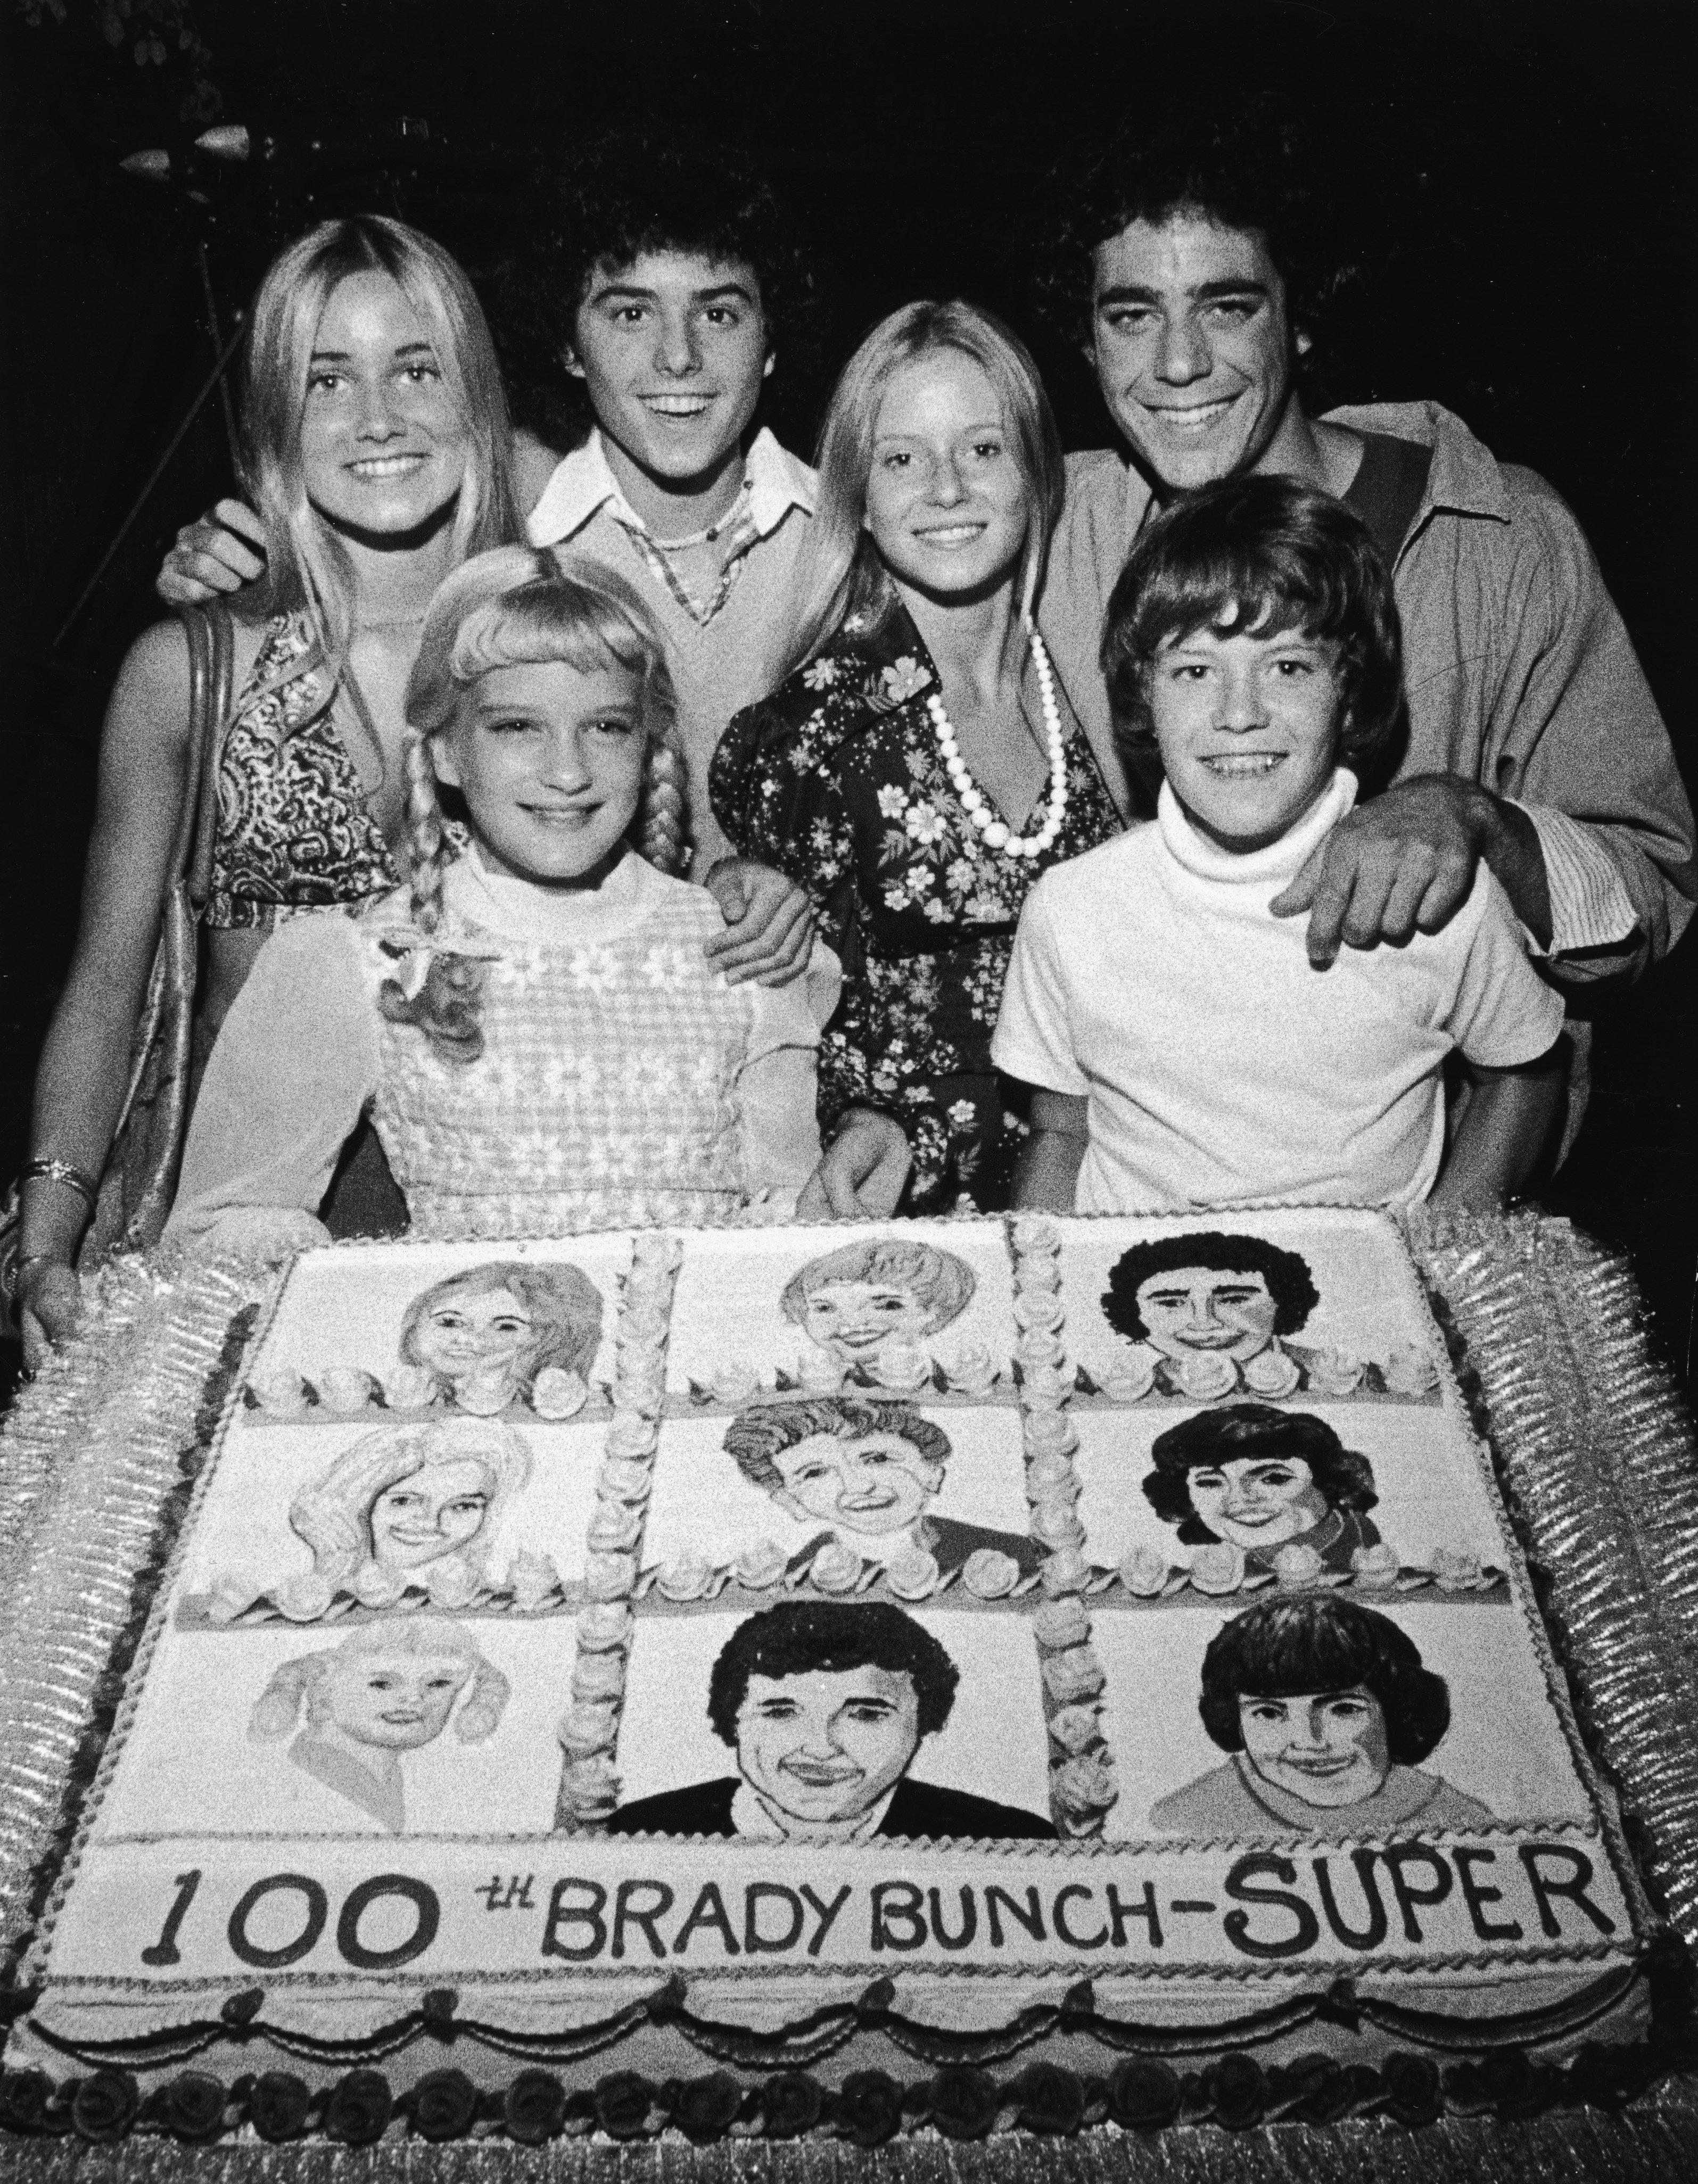 """Maureen McCormick, Susan Olsen, Christopher Knight, Eve Plumb, Barry Williams, and Mike Lookinland from """"The Brady Bunch"""" circa 1973. 